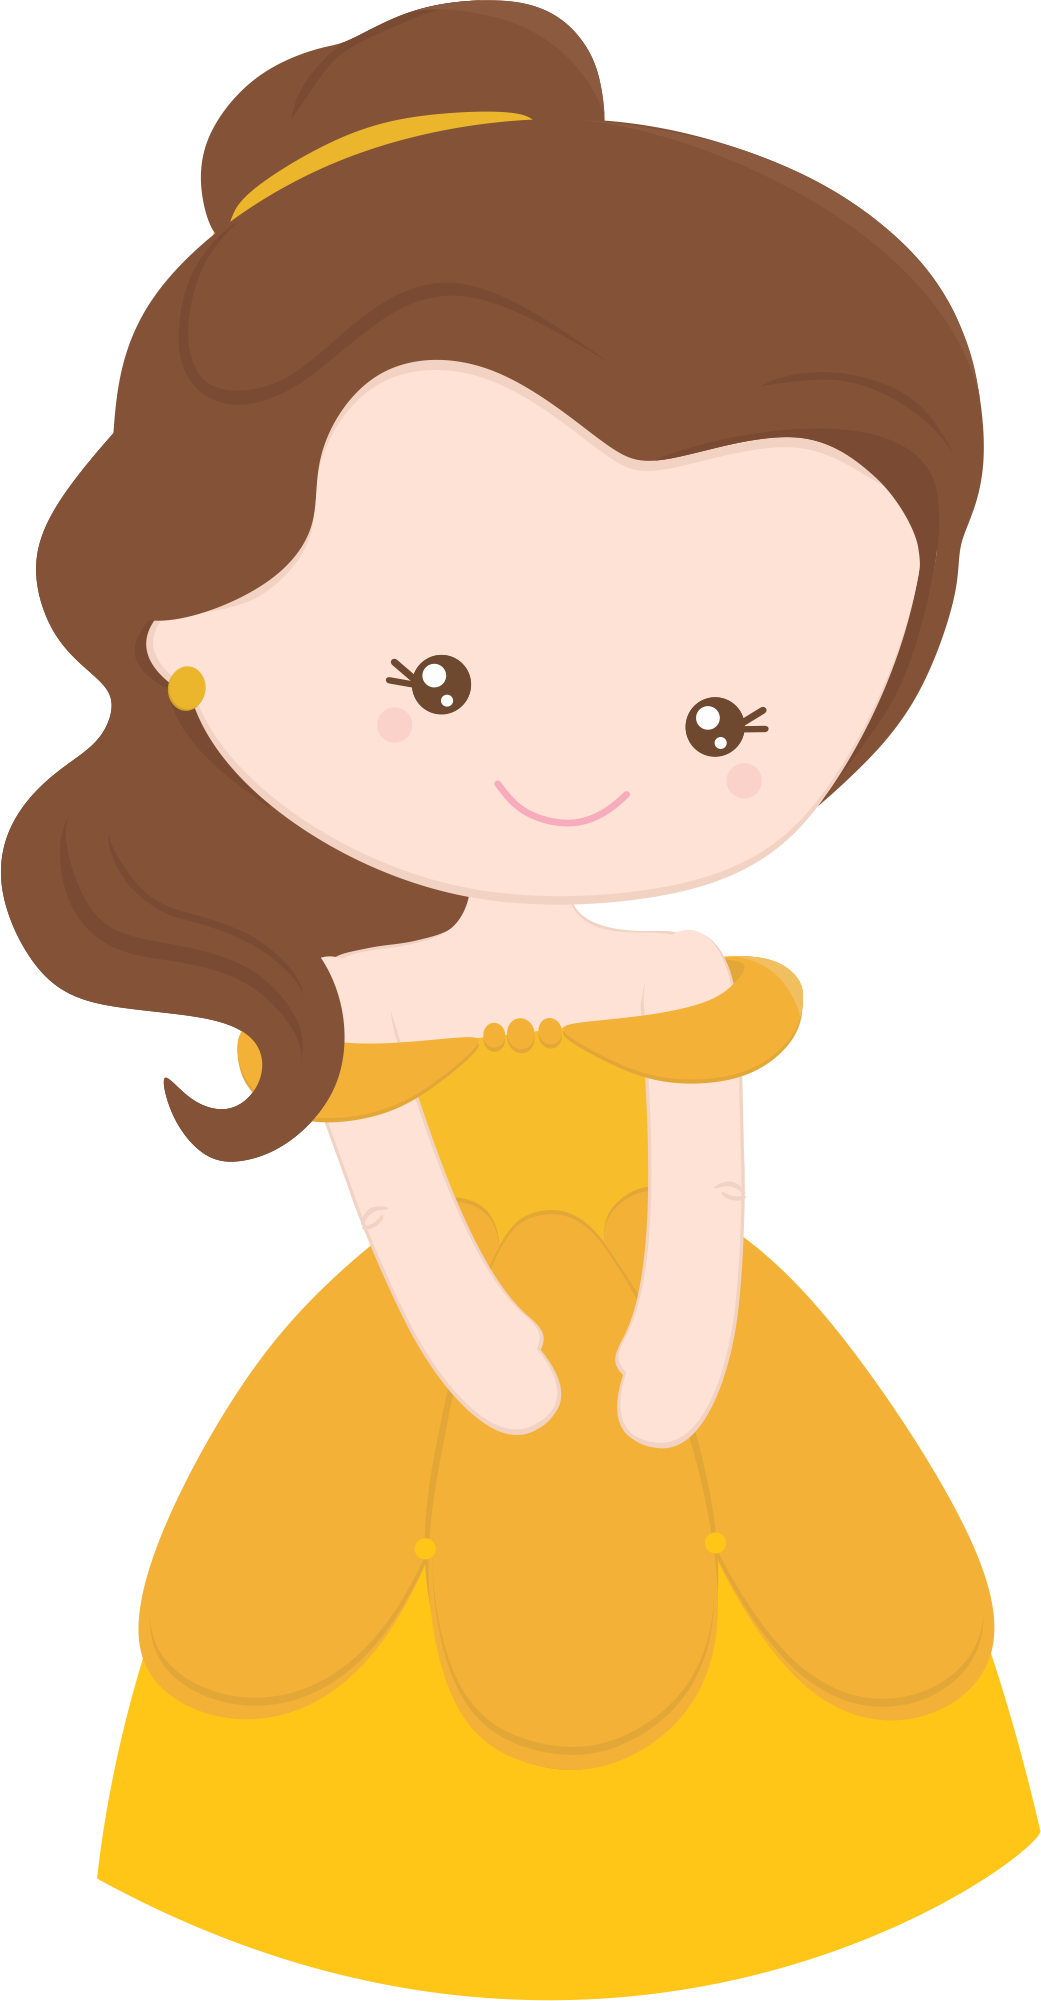 Little Princess 1 e 2-Grafos - grafos-littleprincess1 (3).png ...